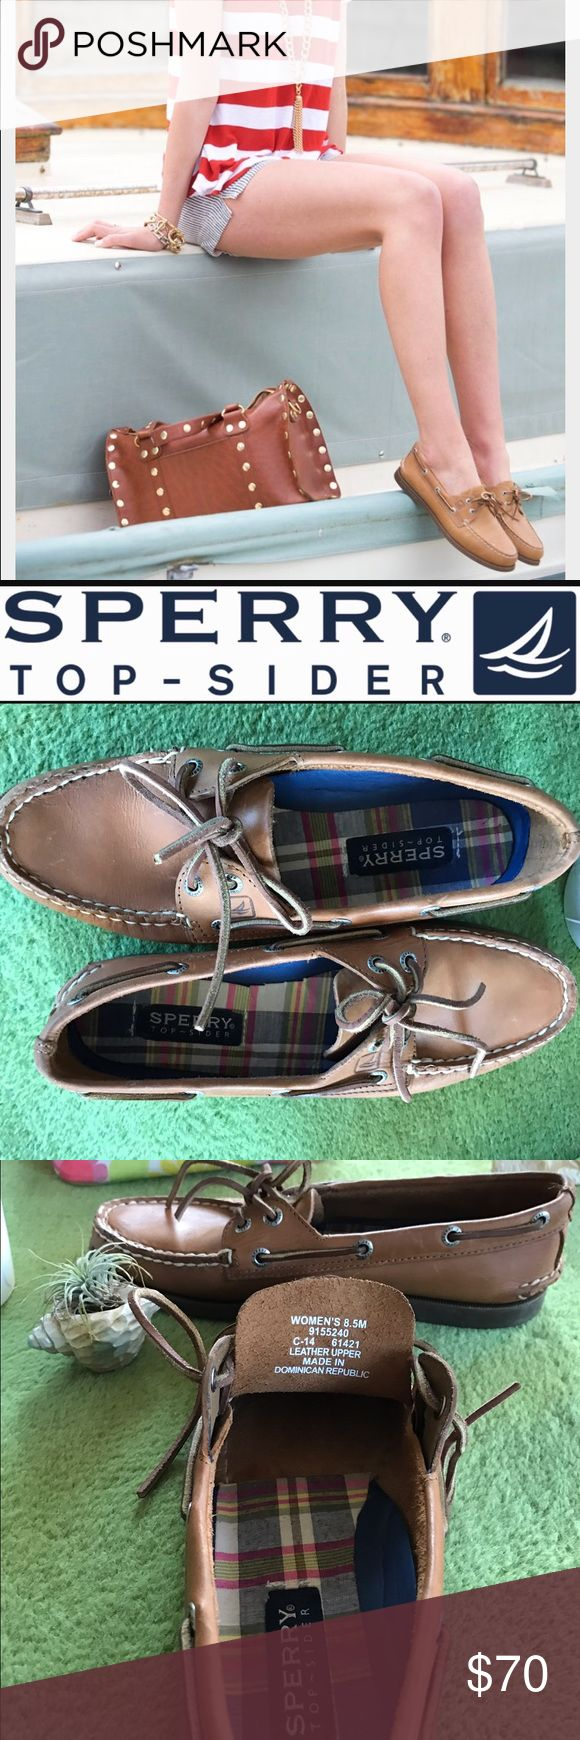 ⚡️Birthday sale! ⚡️SPERRY Classic boat shoe 💋🌺⚓️ Excellent condition Sperry classic boat shoe. See pics for the website description! Open to offers! 💋🌺 Sperry Shoes Flats & Loafers